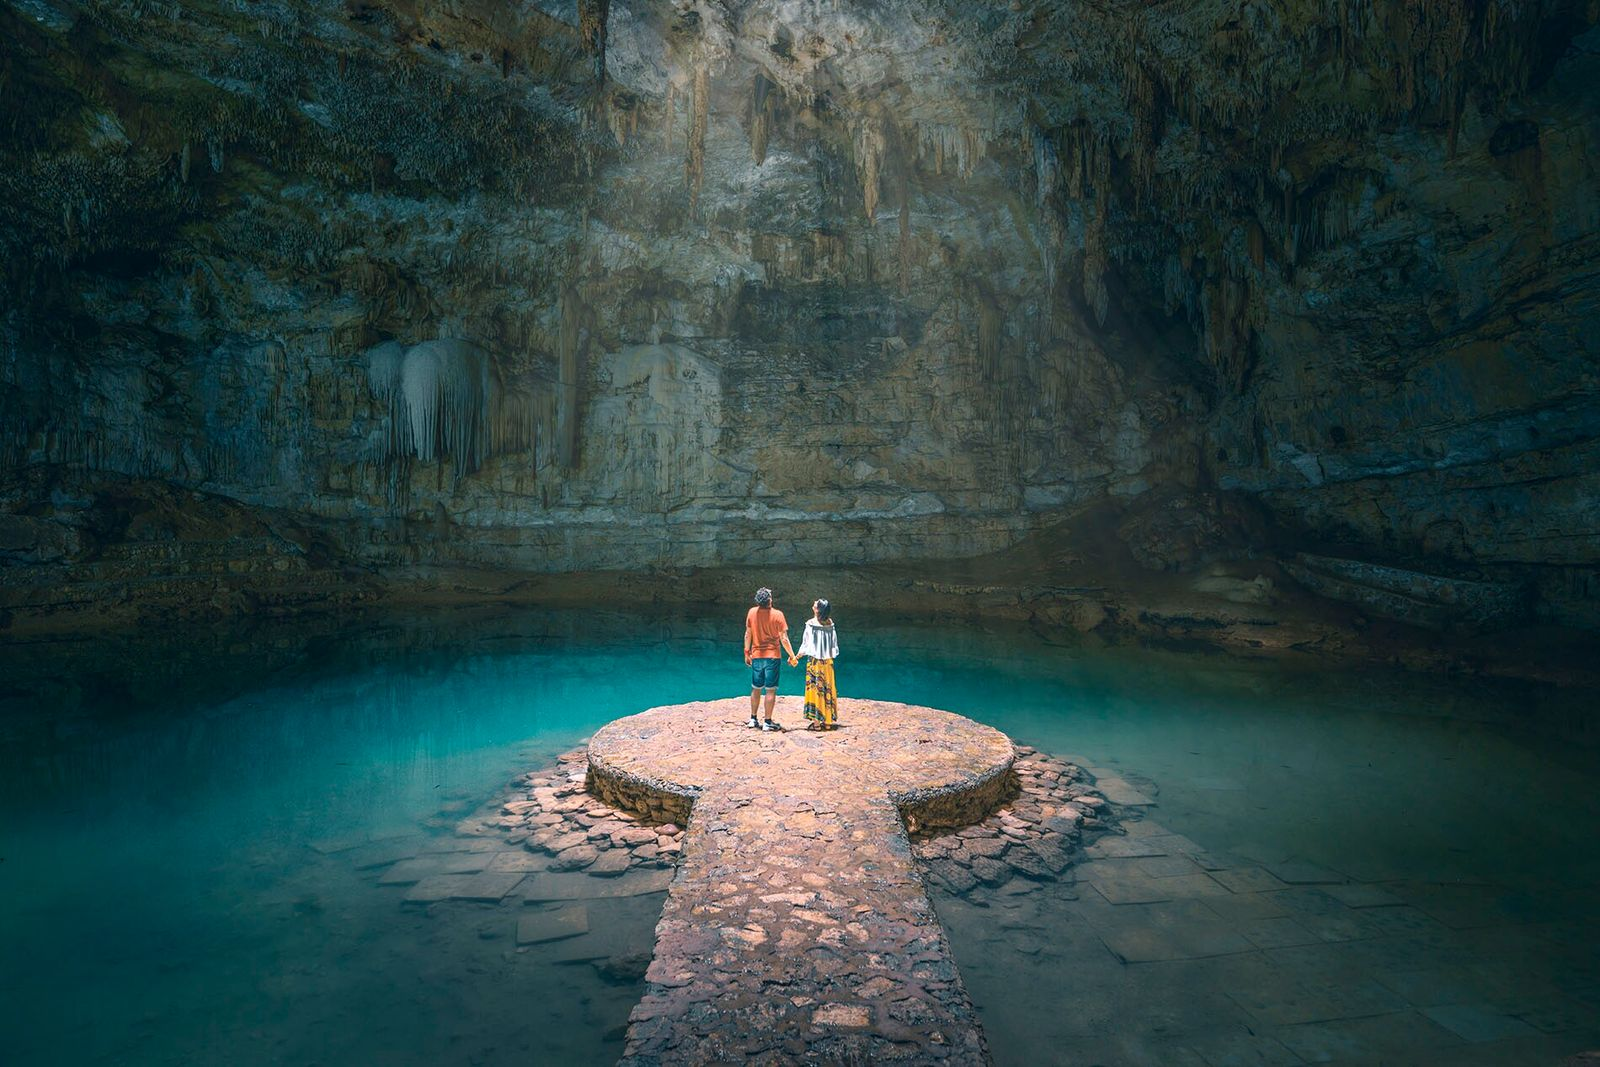 A couple holdhands while exploring a cenote in Mexico's Yucatán Peninsula.